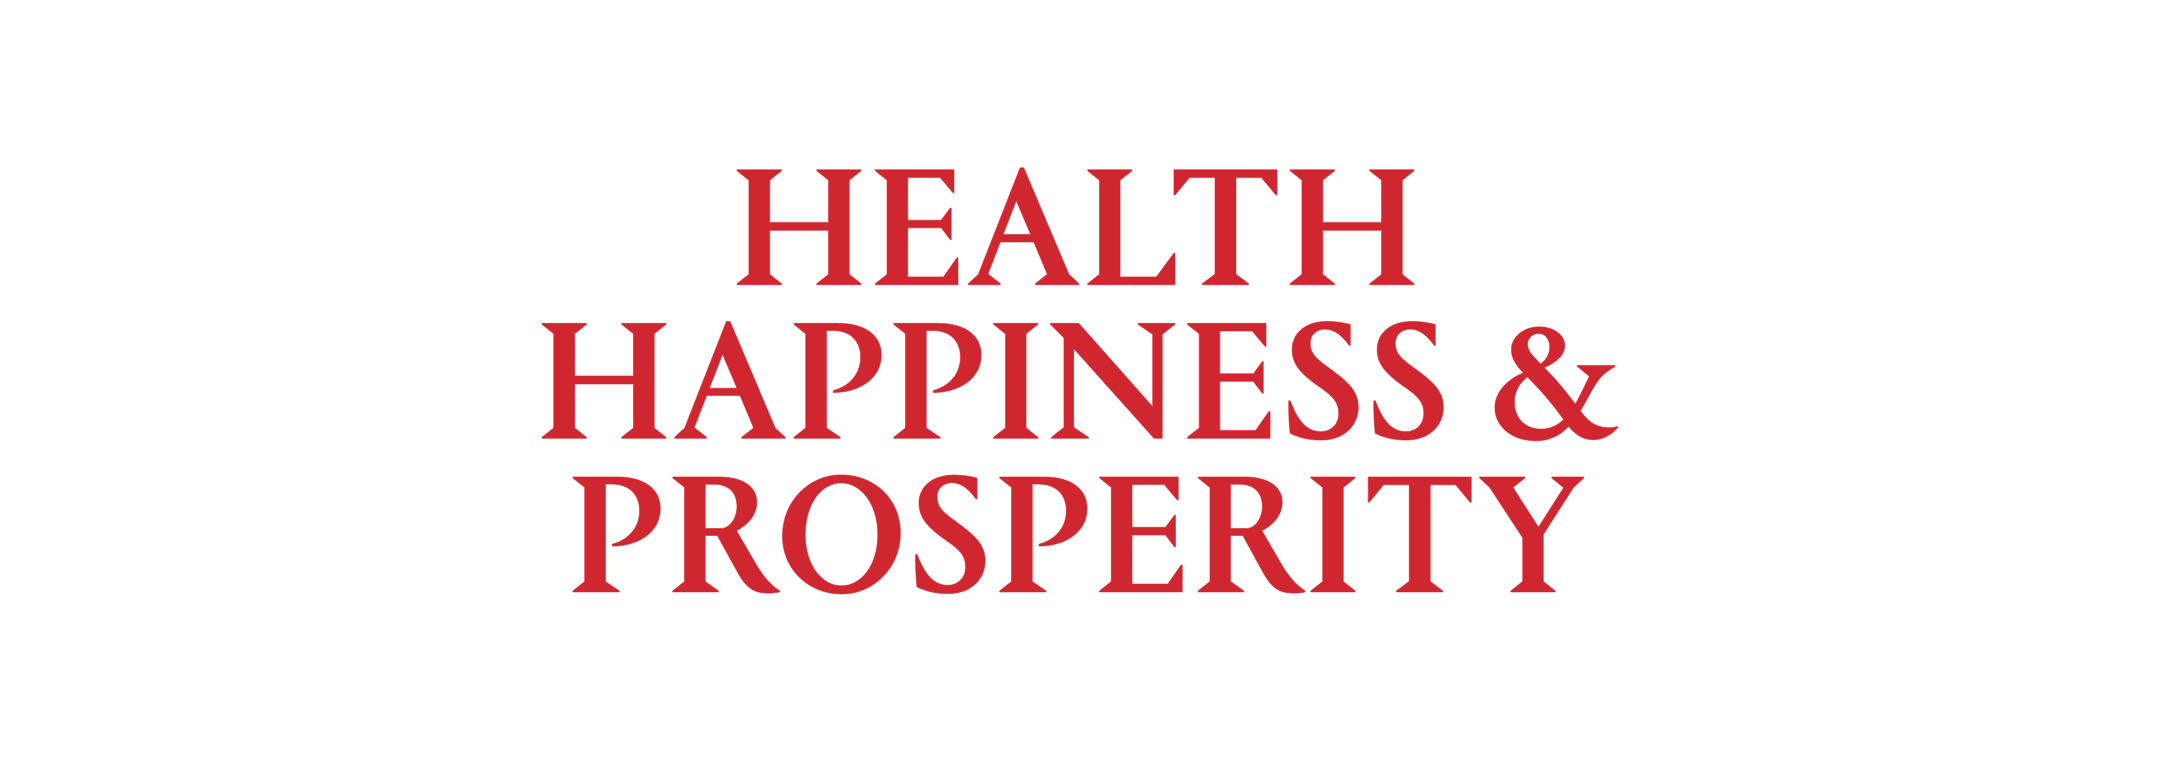 Health, Happiness & Prosperity